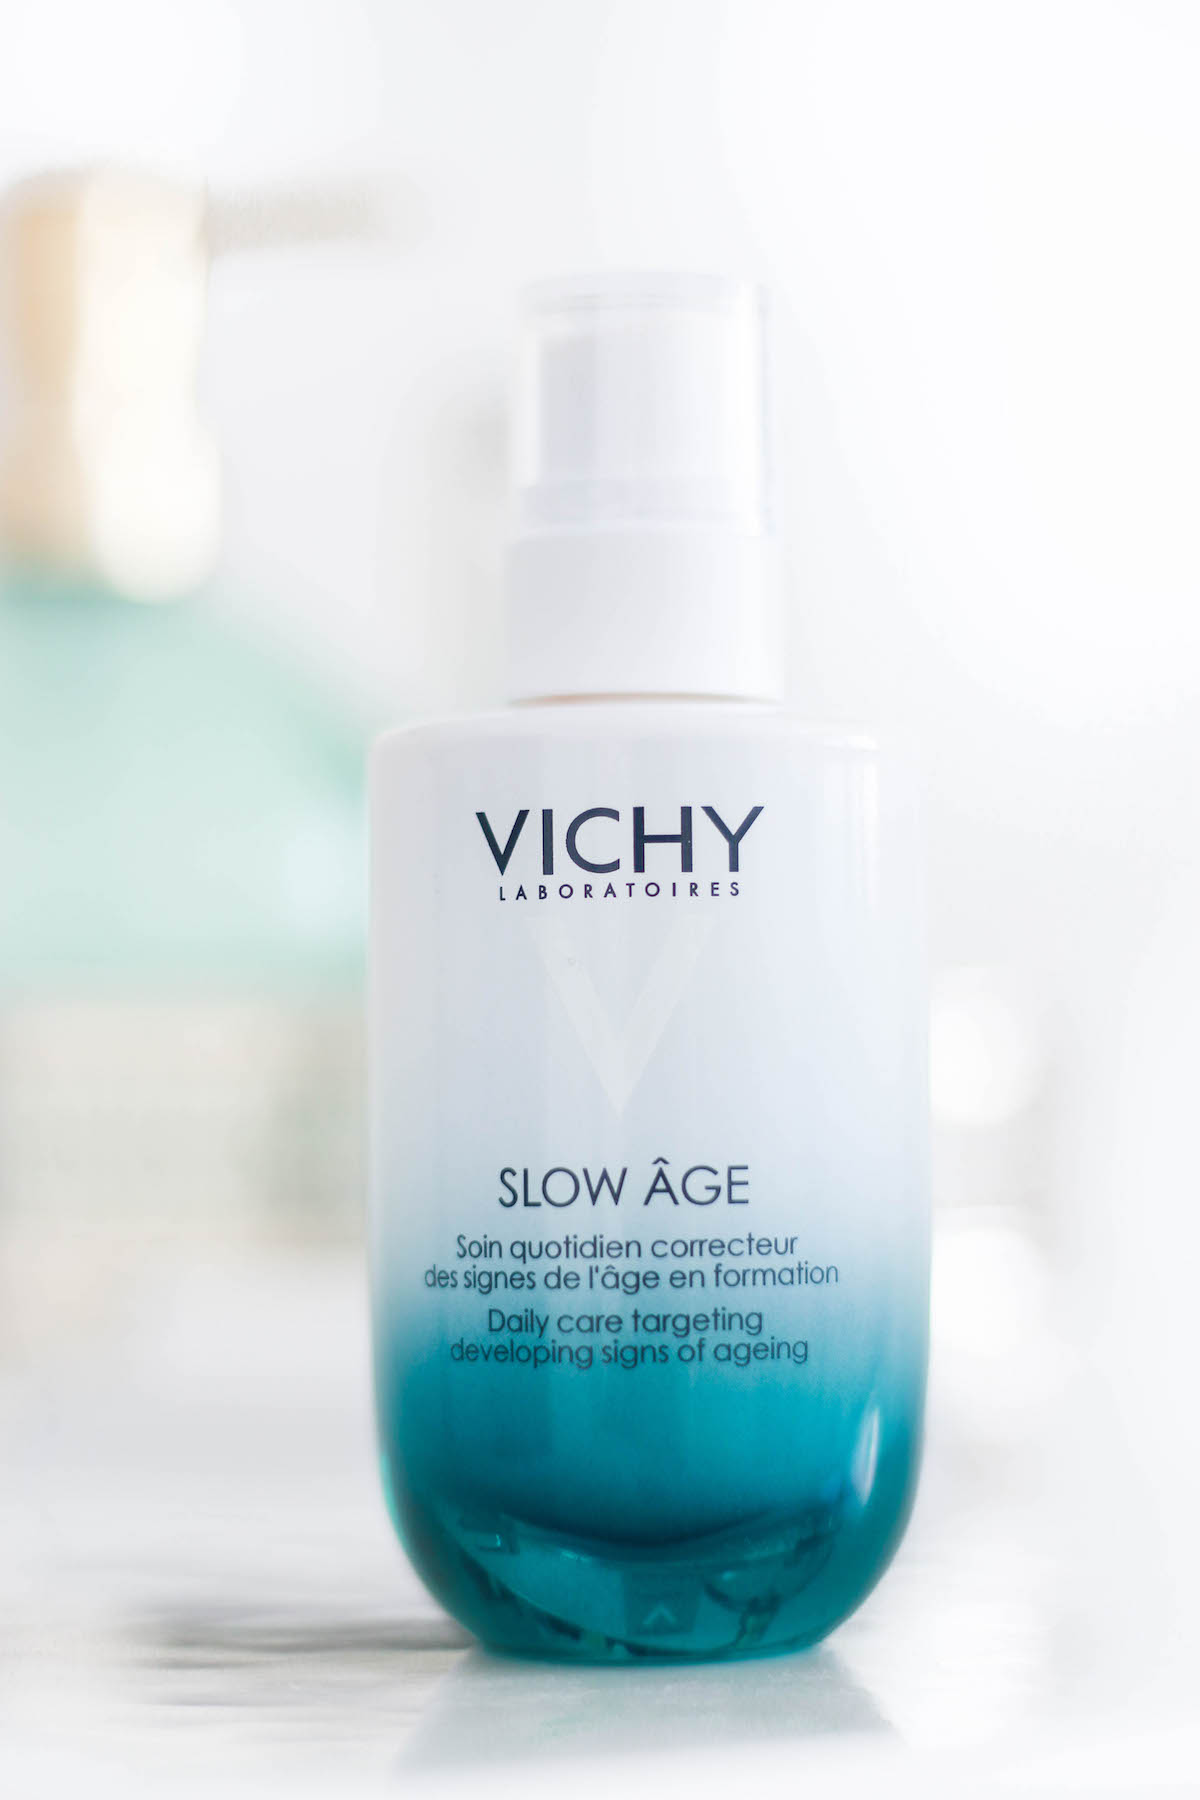 slow-age-vichy-neues-produkt-review-beauty-blog-sara-bow